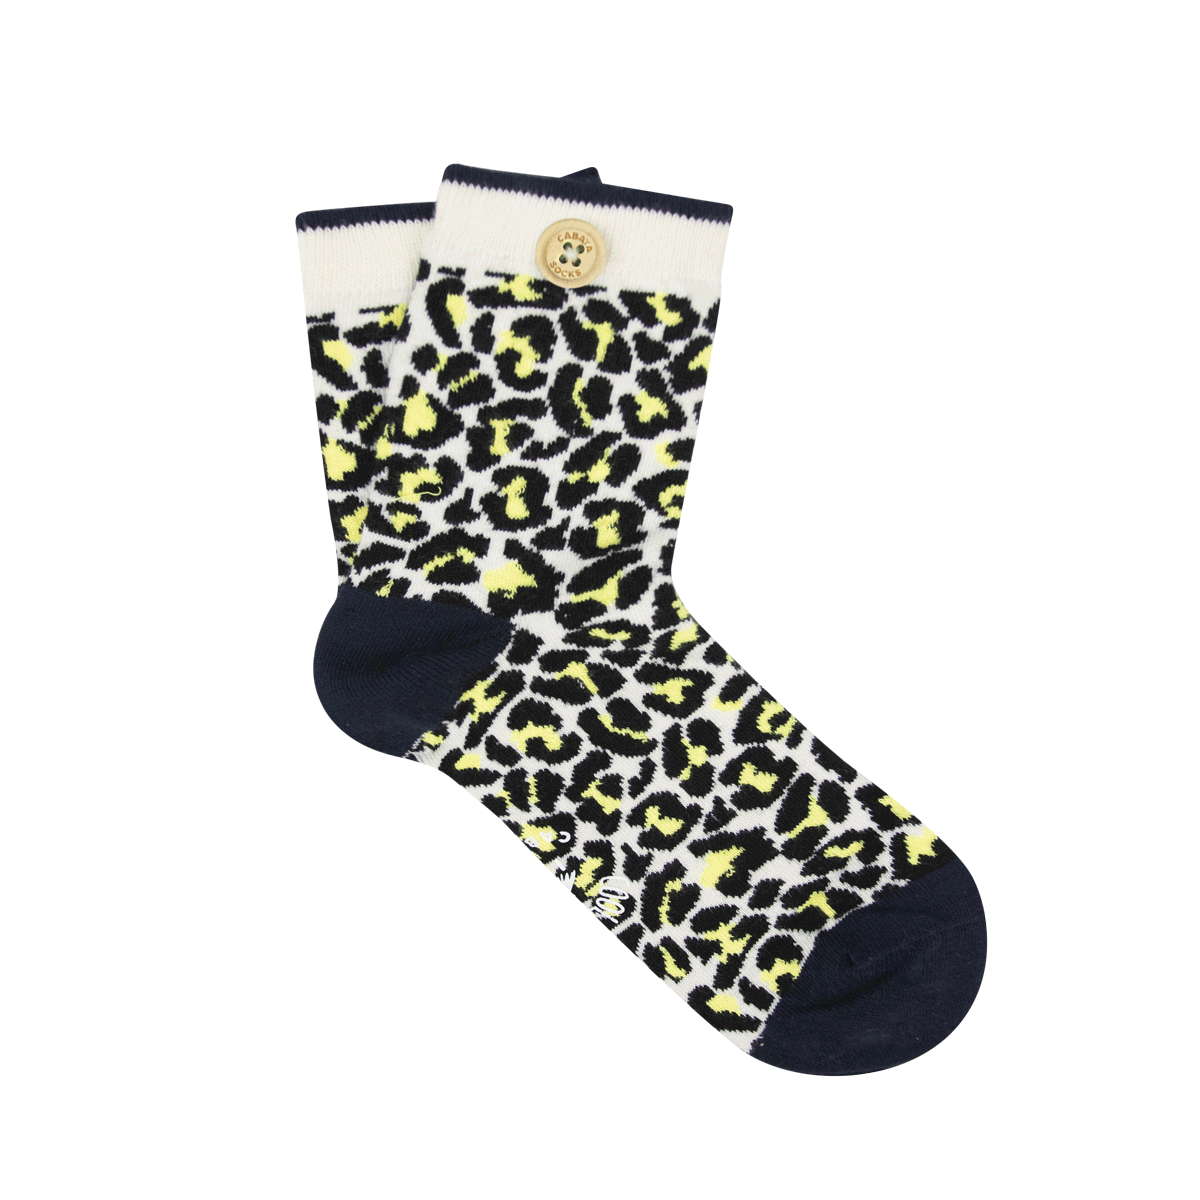 unloosable-socks-button-women-36-41-socks20-ambr-yel